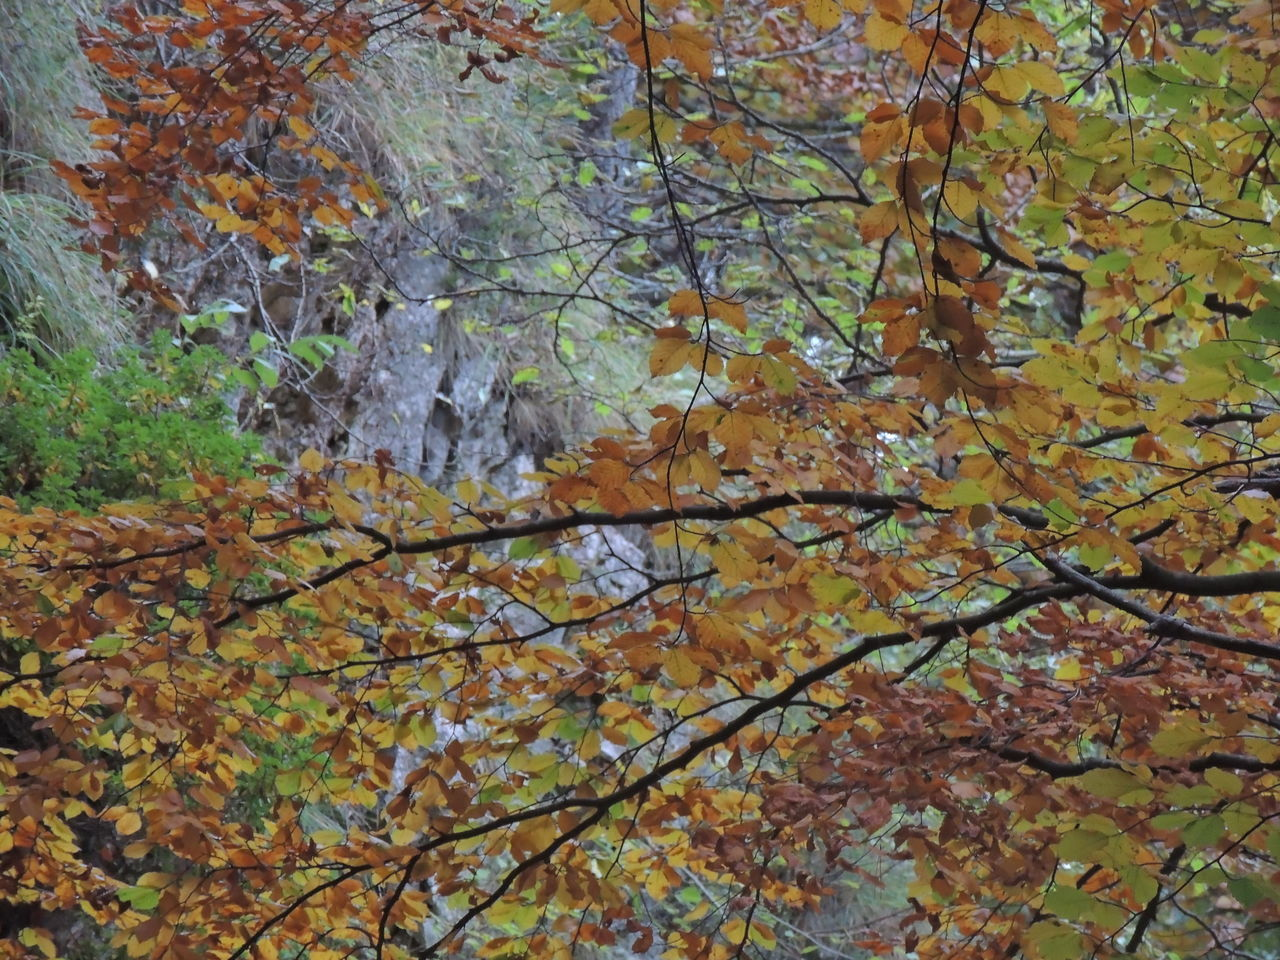 autumn, change, leaf, nature, tree, beauty in nature, branch, no people, maple tree, growth, tranquility, day, maple leaf, outdoors, maple, close-up, fragility, water